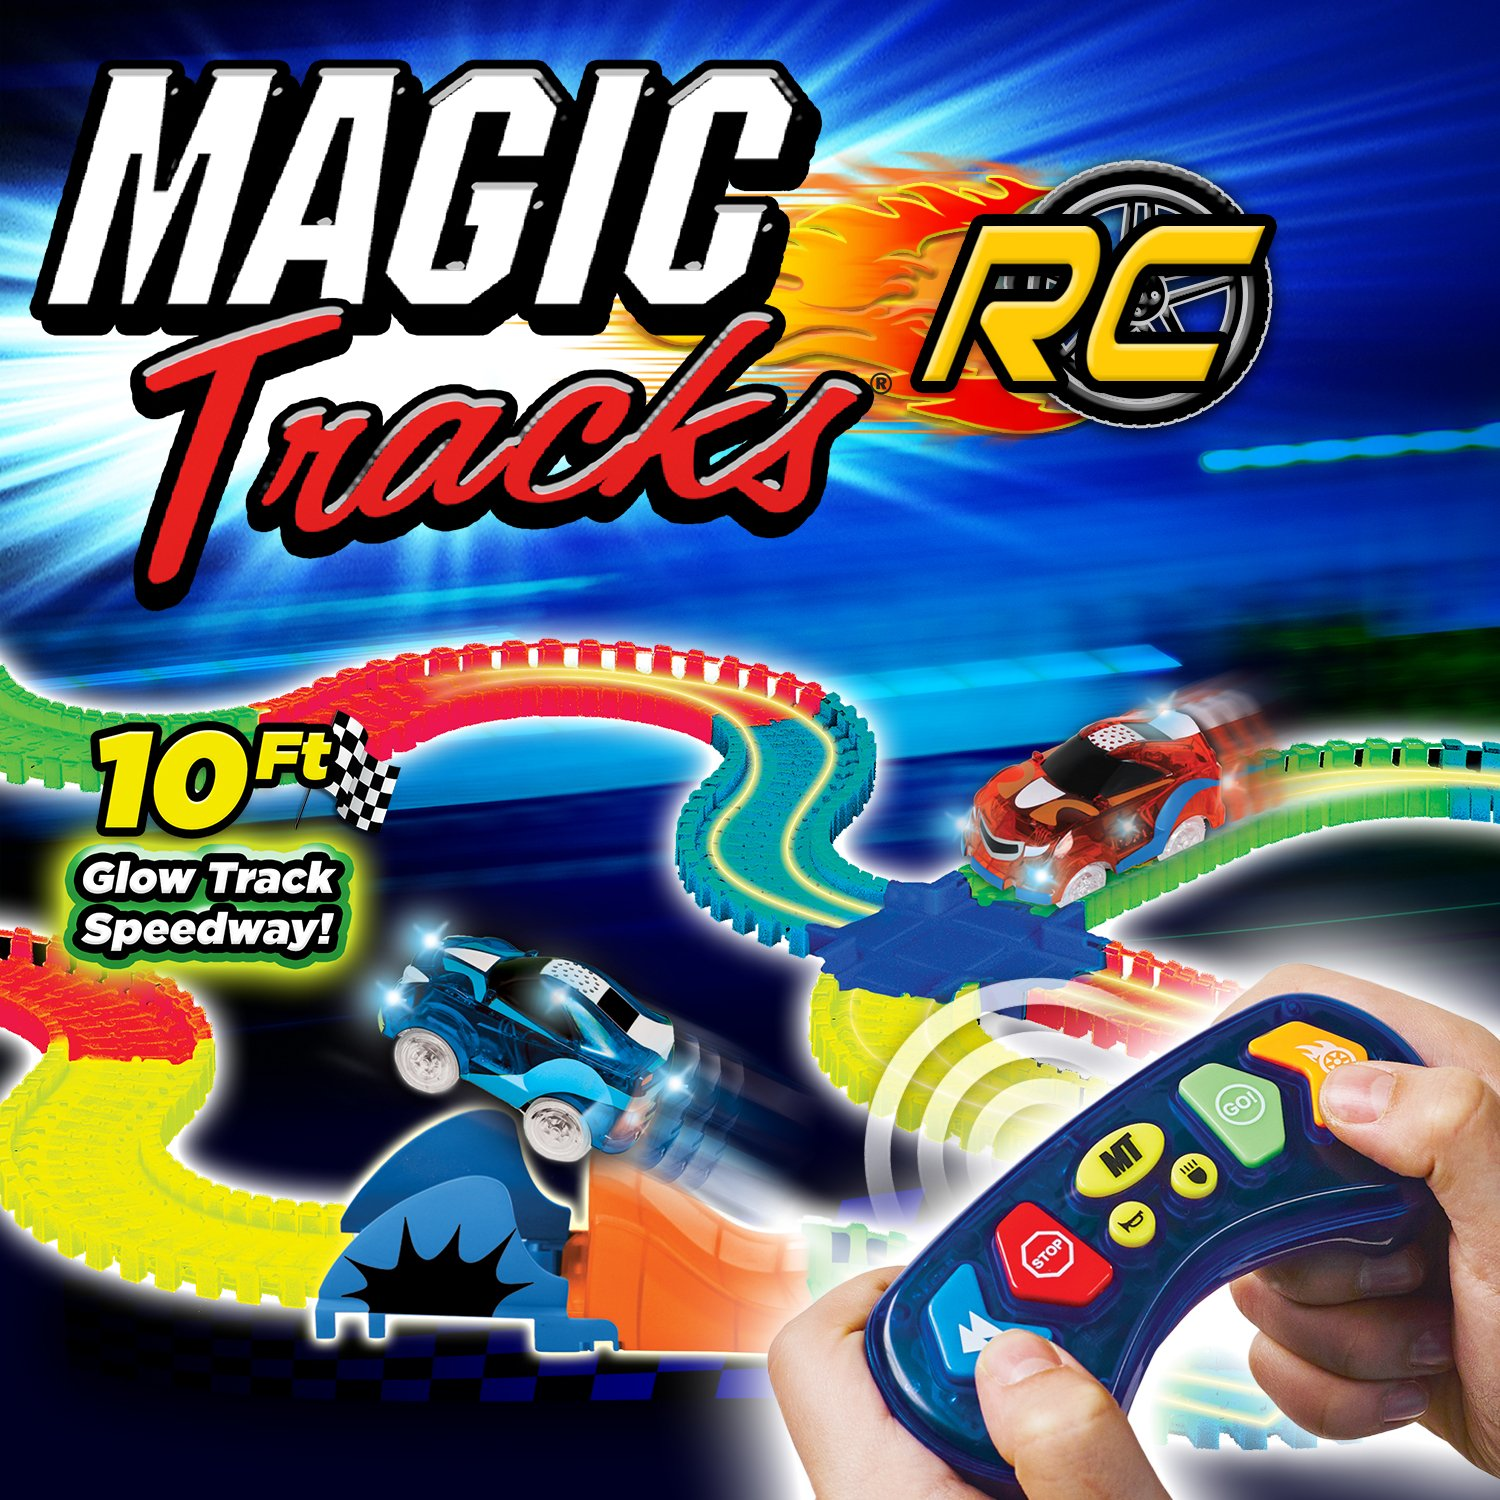 Ontel Magic Tracks Rc With Remote Control Turbo Race Gamis Onthel Series Cars And 10 Ft Of Flexible Bendable Glow In The Dark Racetrack As Seen On Tv Home